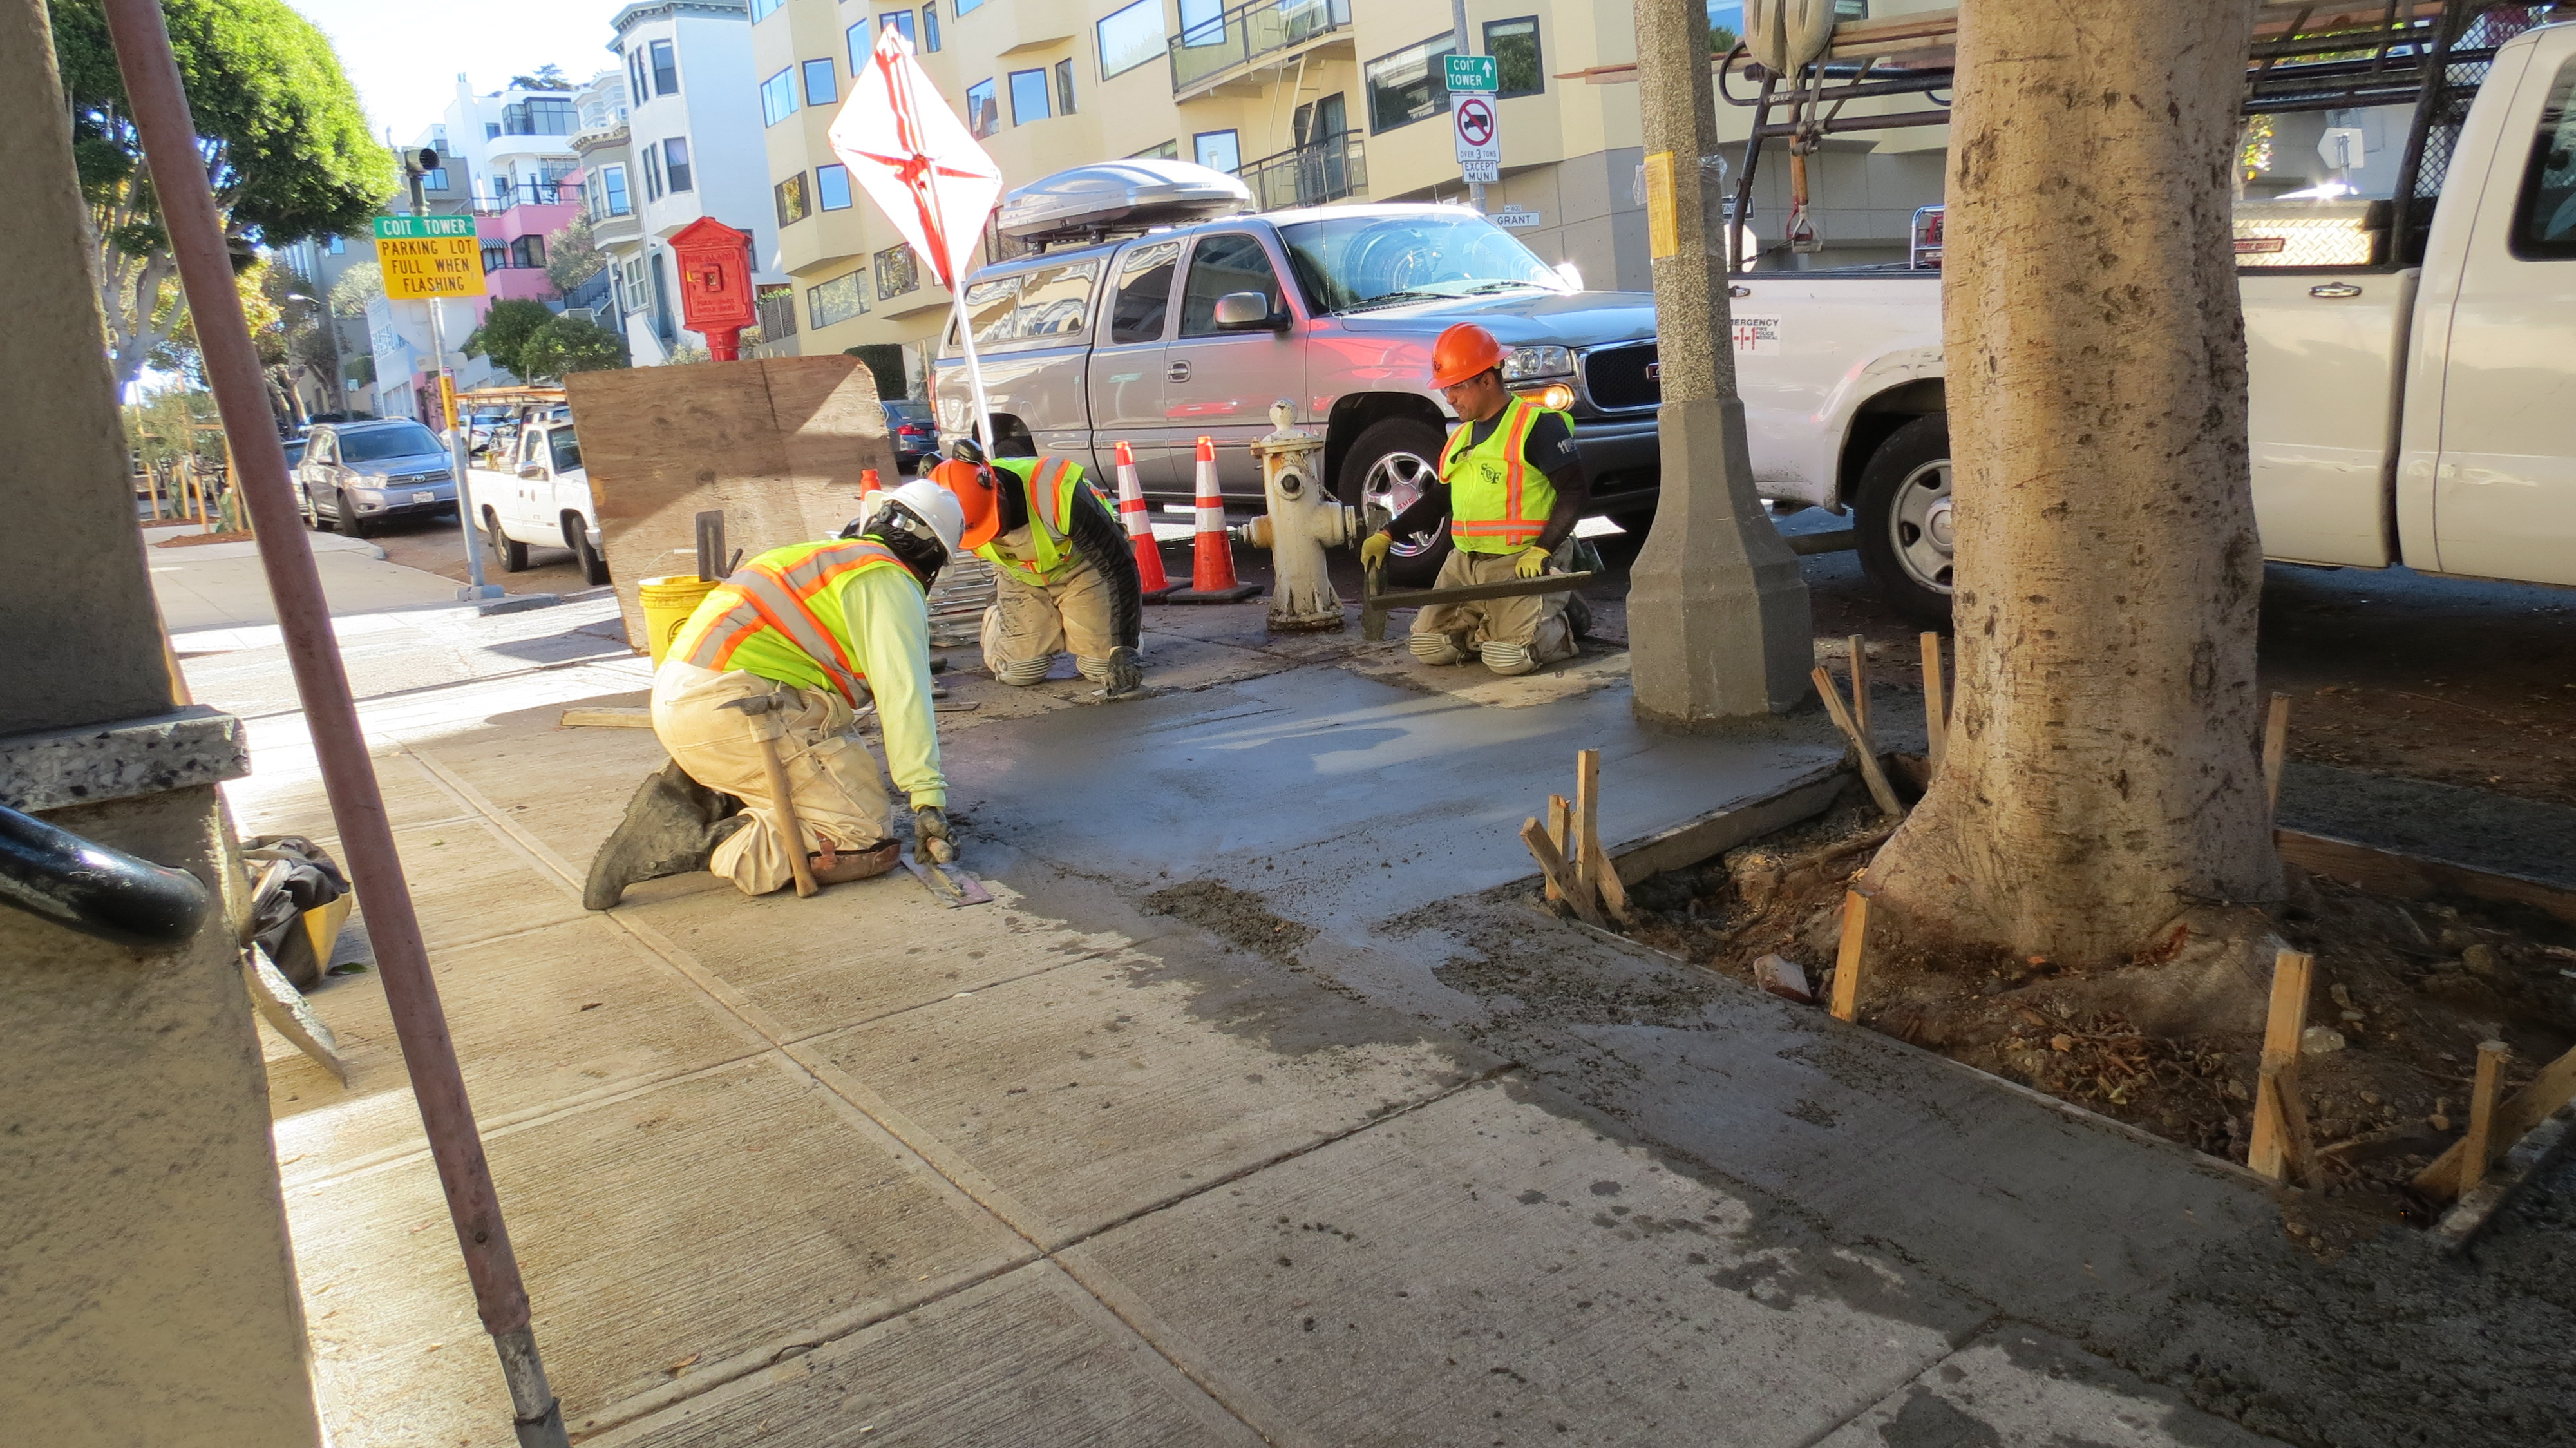 Sidewalk Inspection and Repair Program